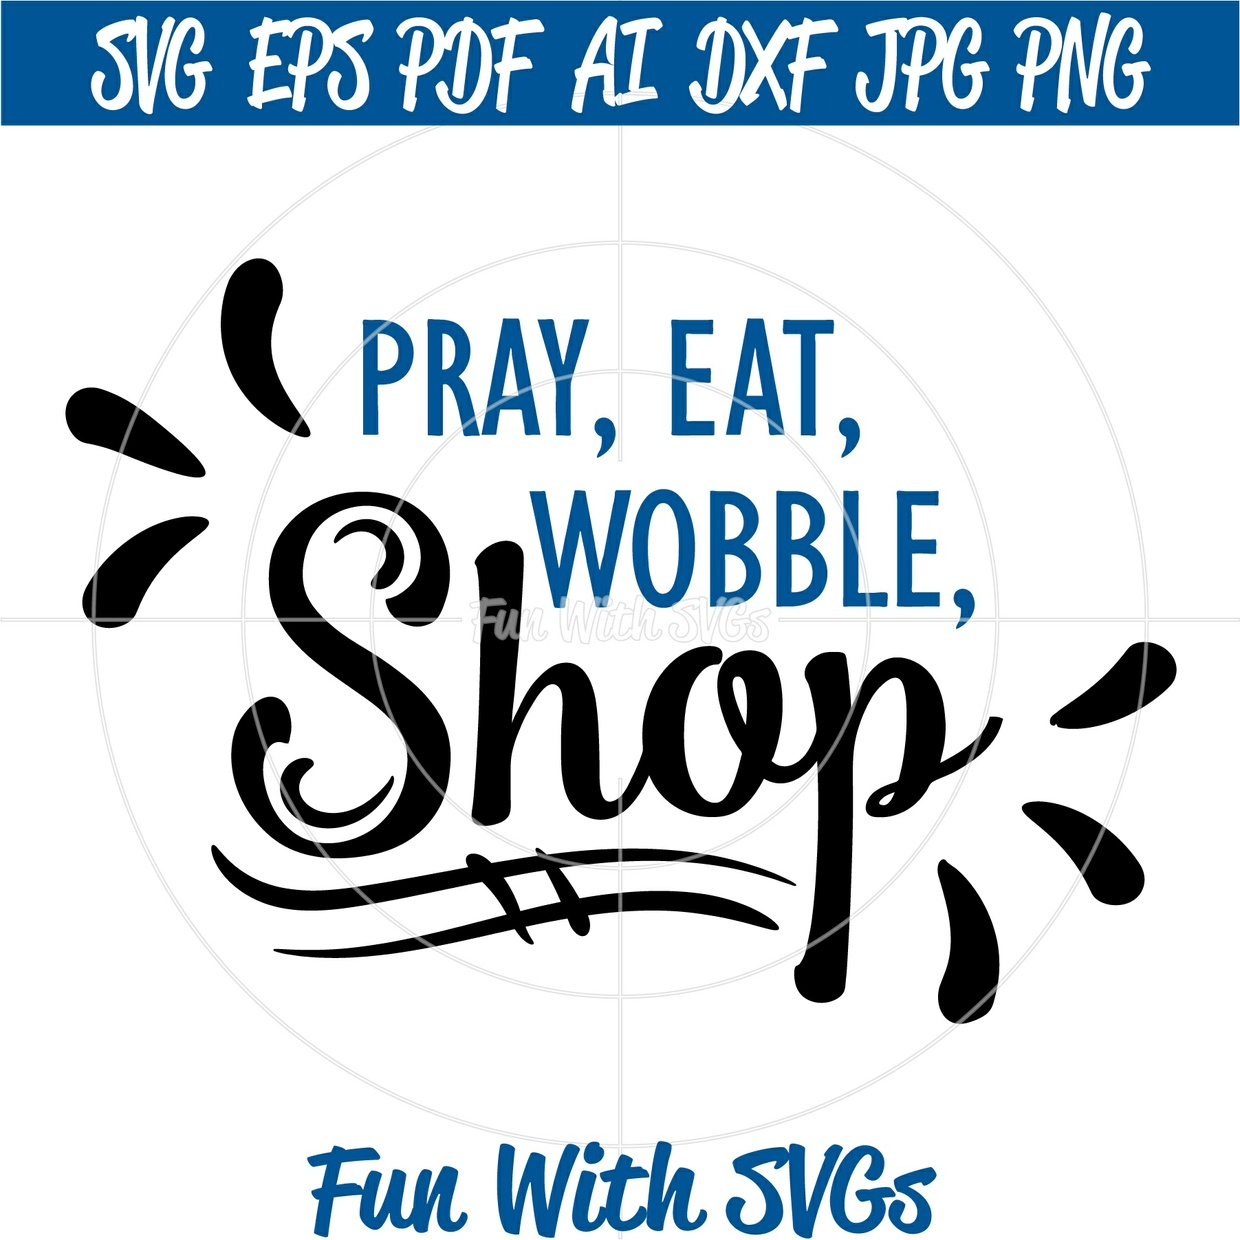 Black Friday SVG, Pray, Eat, Wobble Shop, PNG, EPS, DXF and SVG Cut File, Printable Graphics